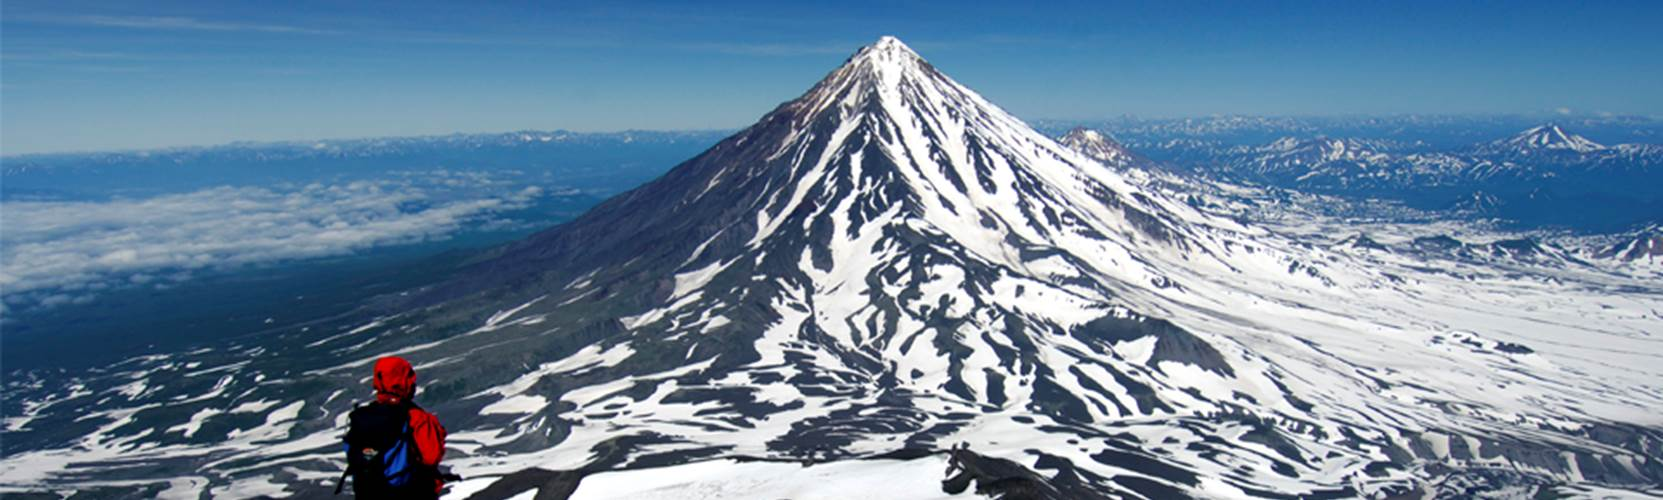 Kamchatka volcanoes and tour